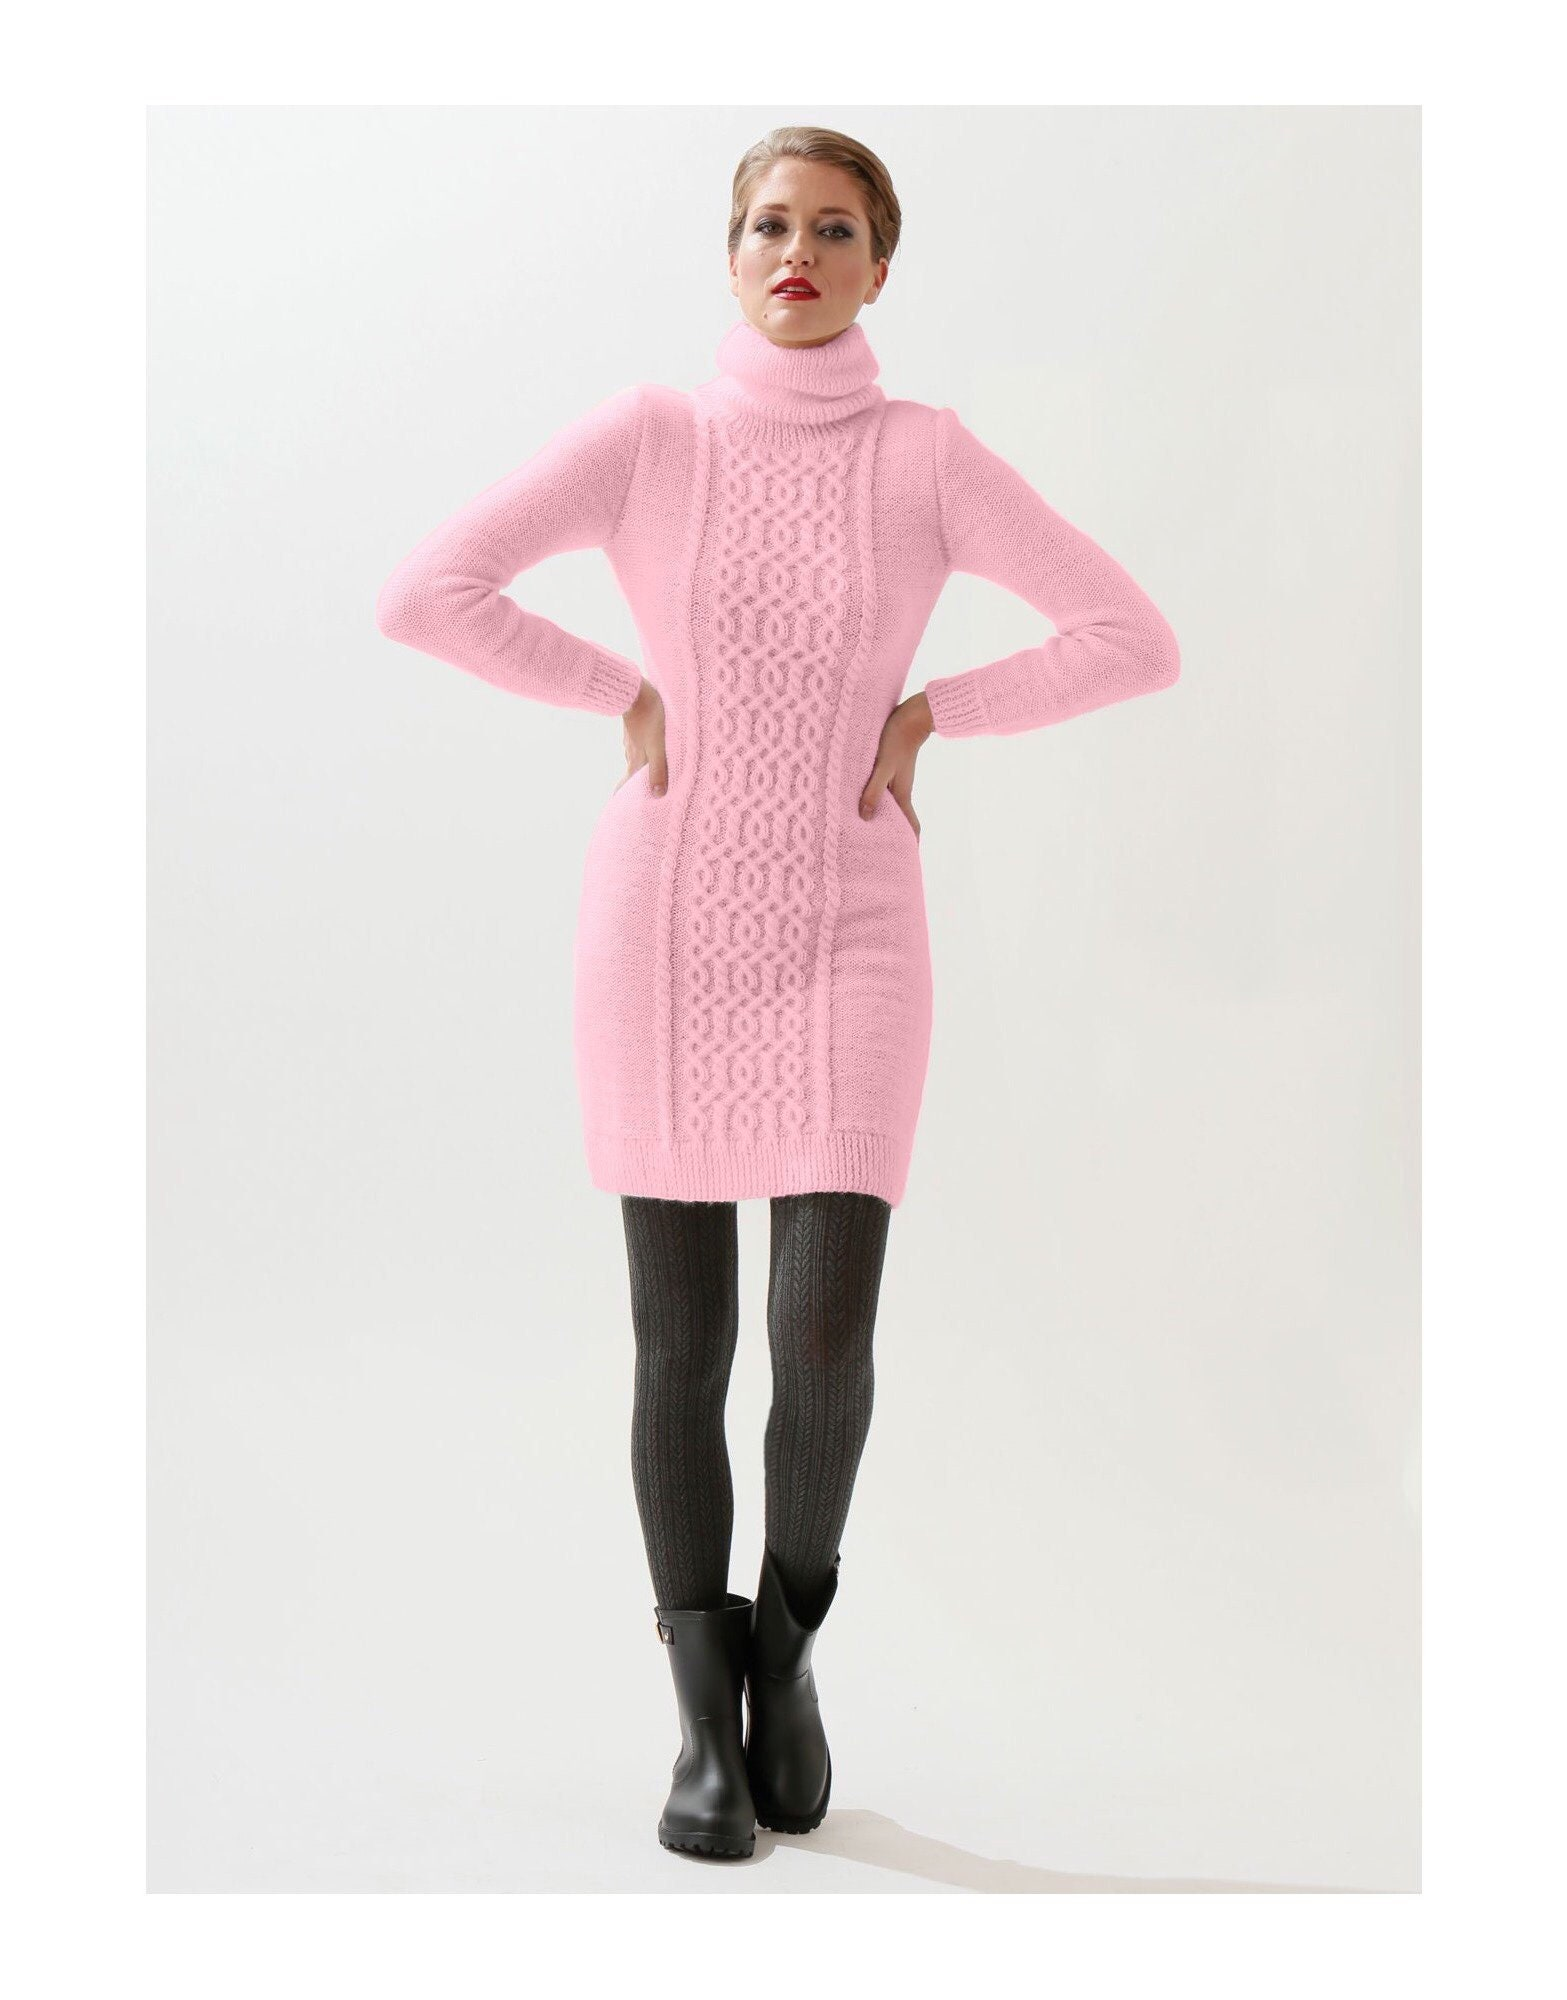 311c3ad775 Gentle pink dress with a high collar turtleneck. Dress with